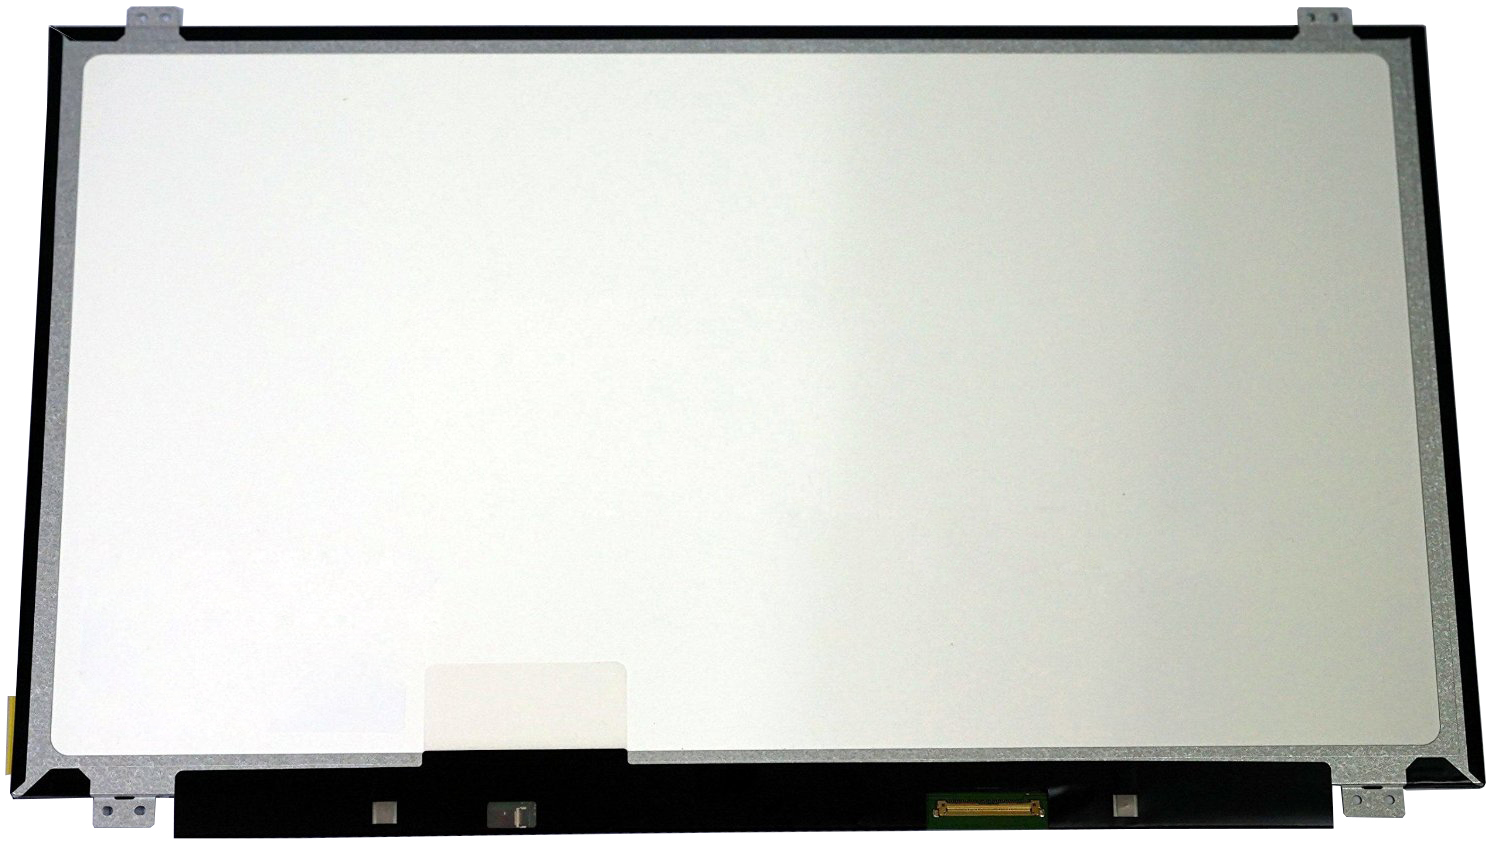 ФОТО QuYing Laptop LCD Screen for Acer ASPIRE ONE CLOUDBOOK 14 V3-472P V5-473P V7-481P V5-473G V7-482P V5-471P(14.0